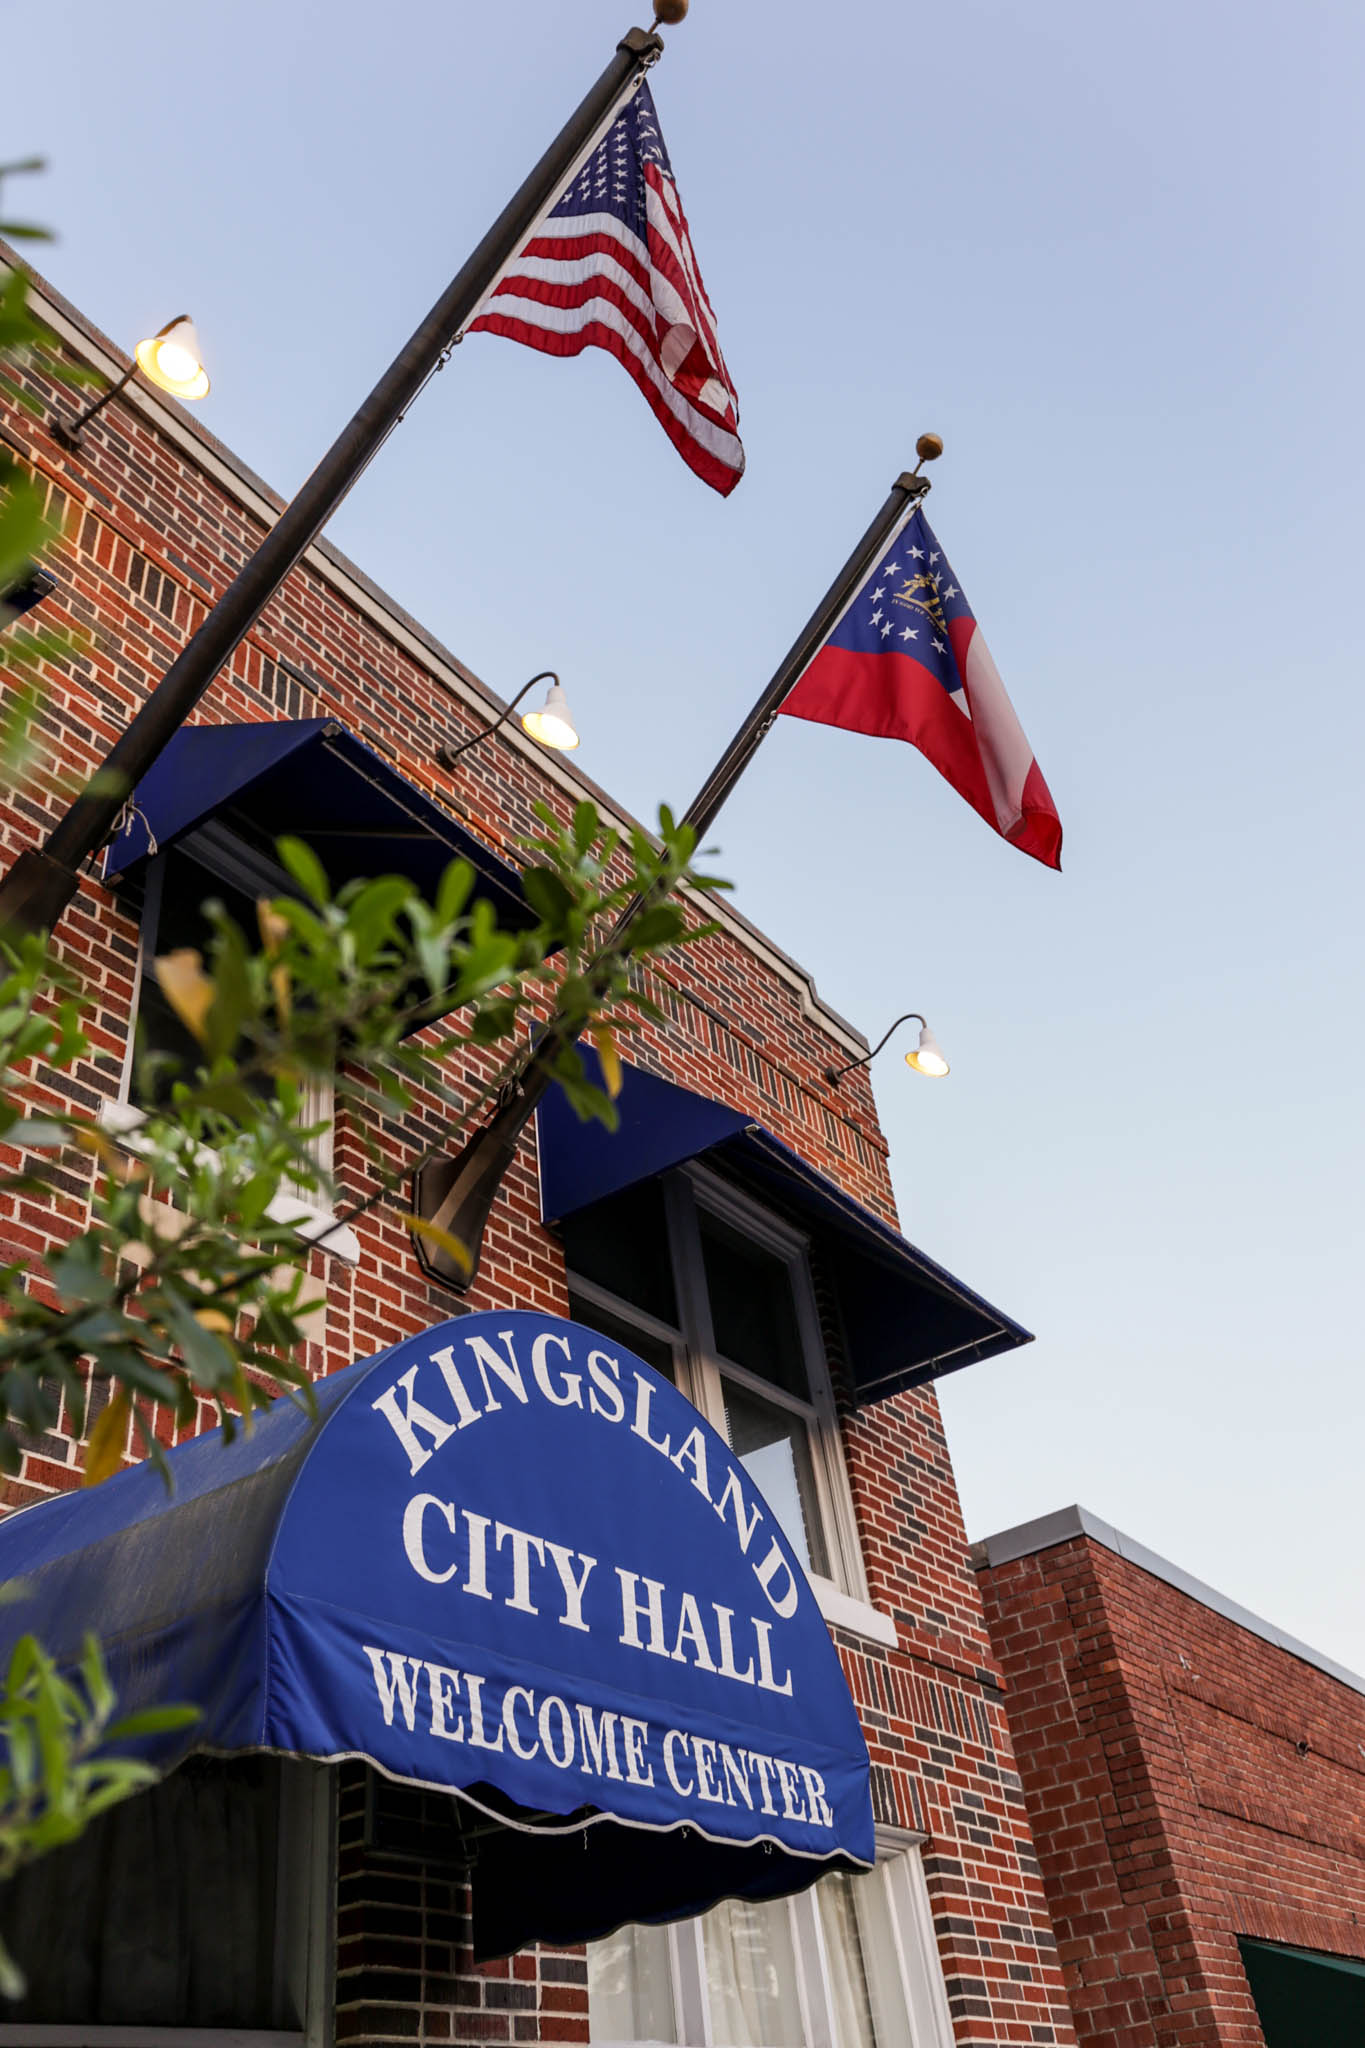 Kingsland City Hall in Historic Downtown Kingsland Georgia